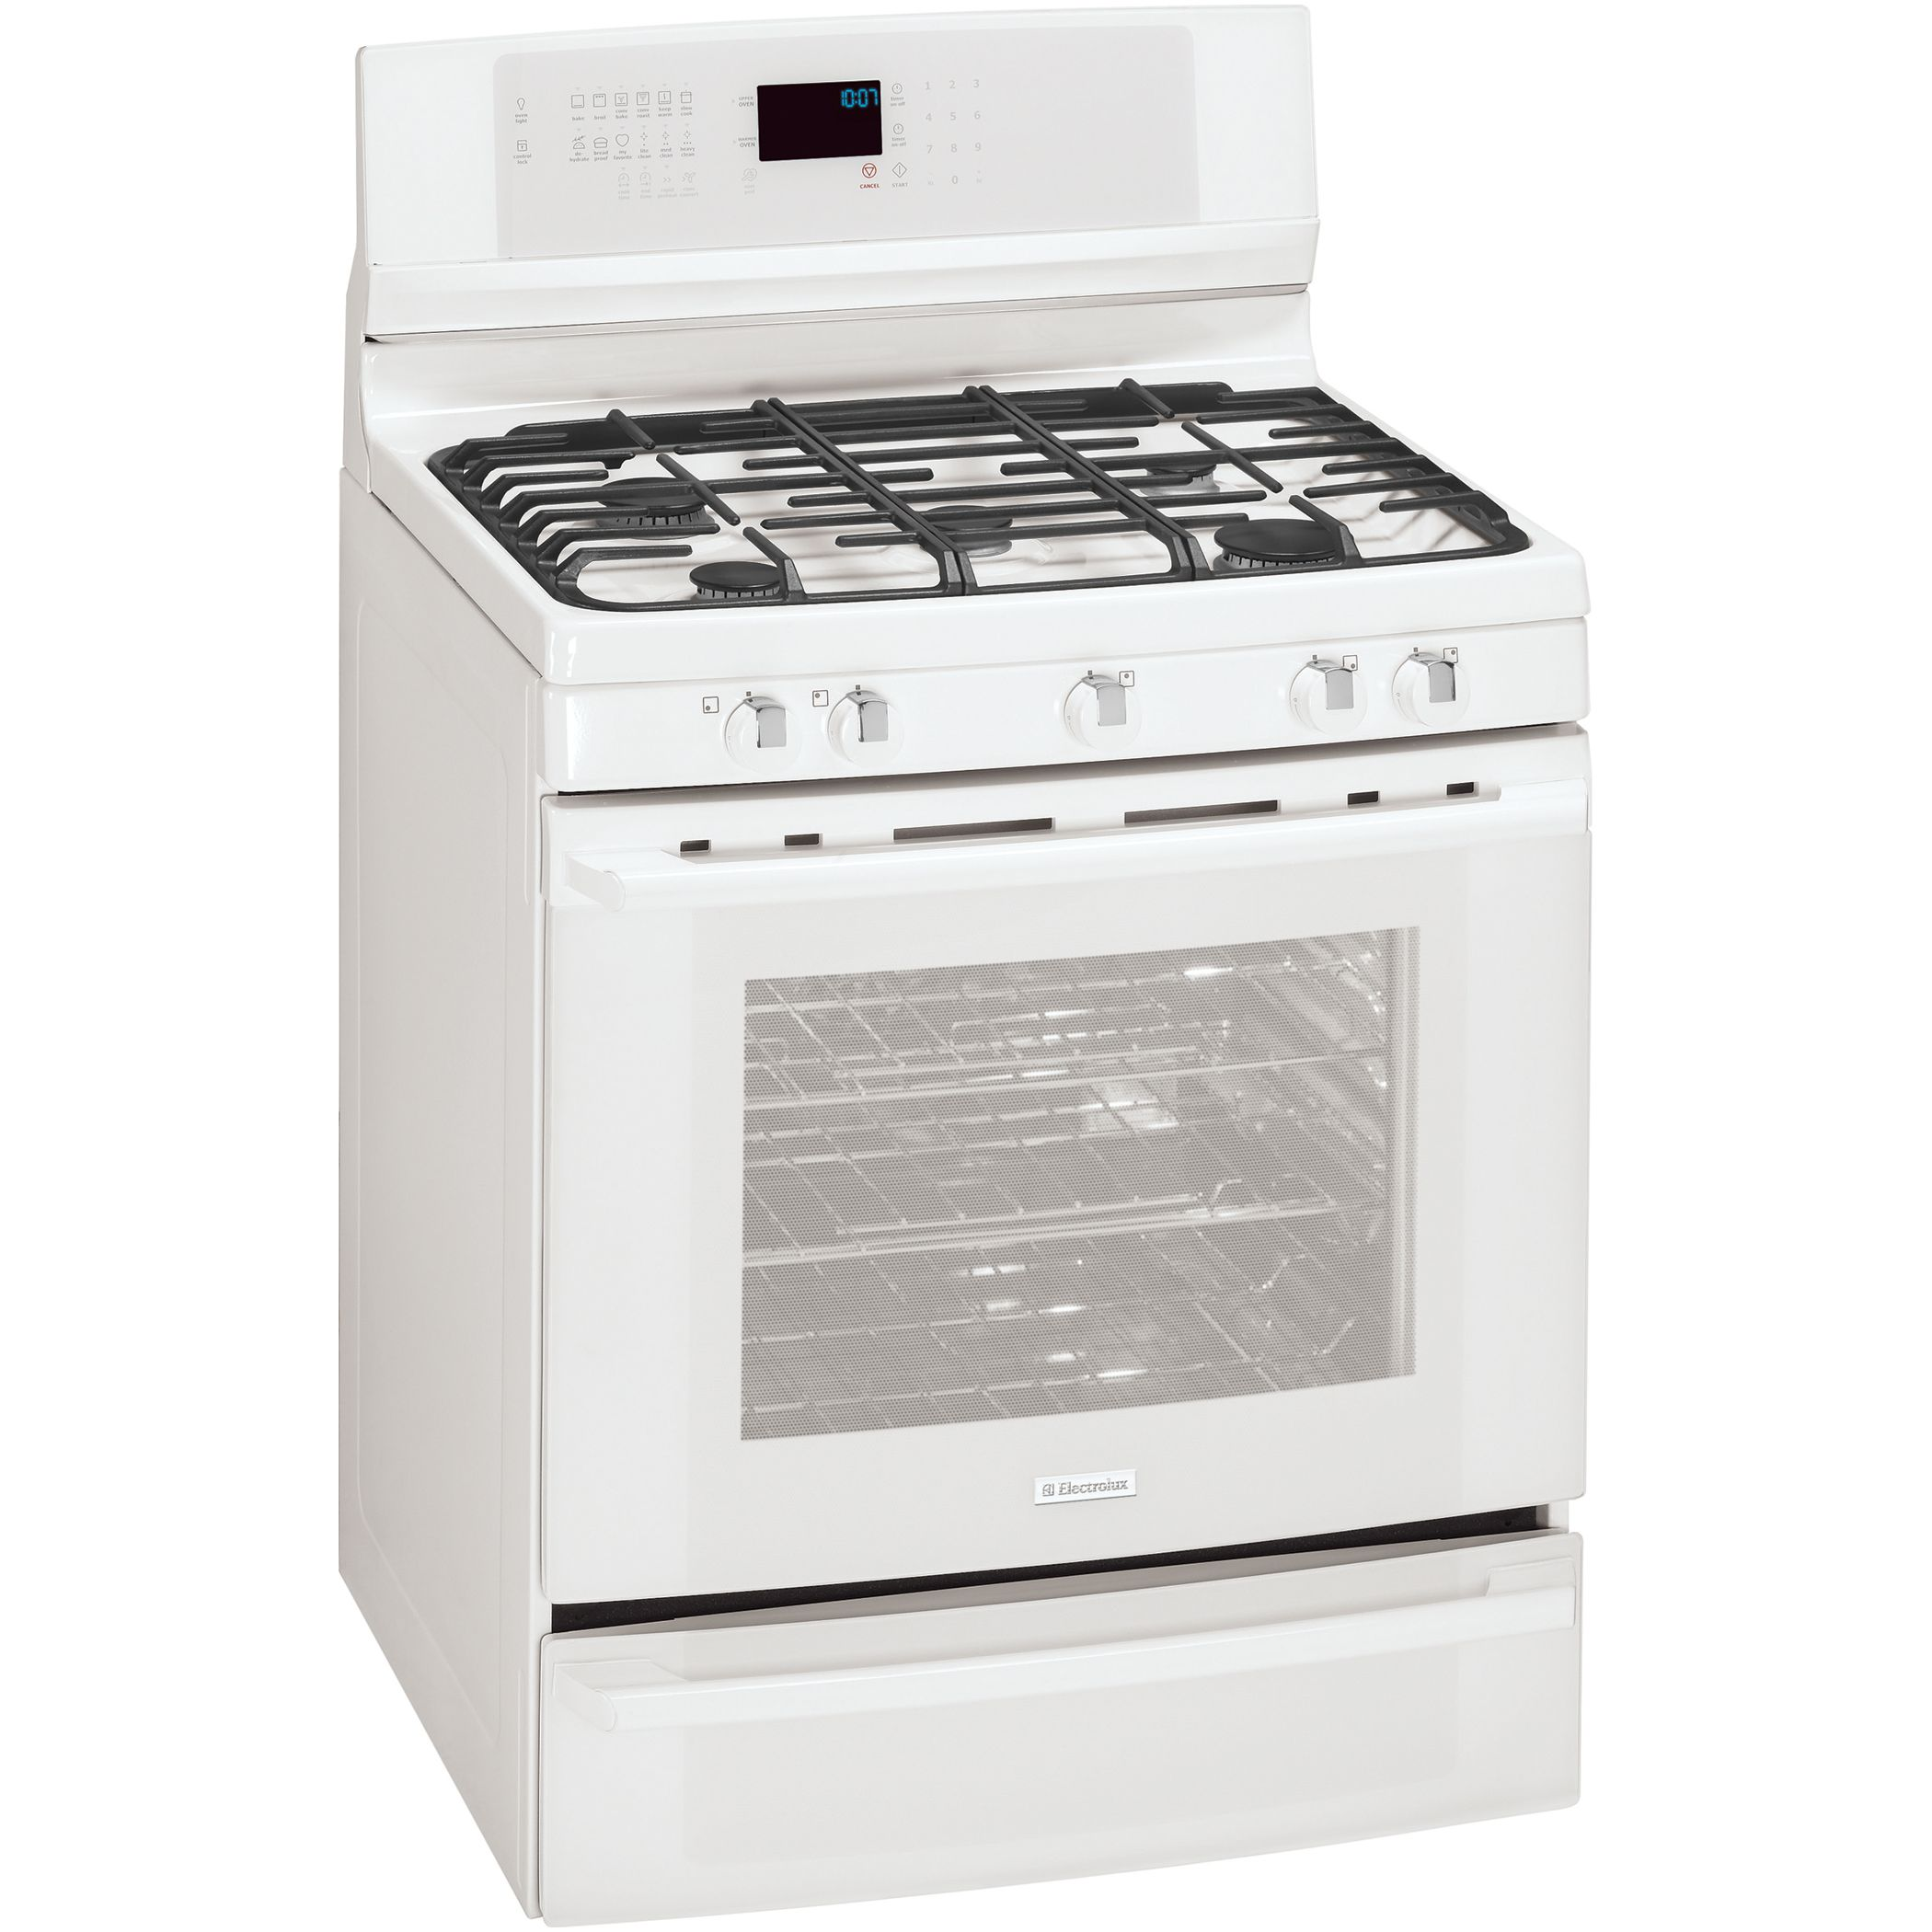 Electrolux 30 in. Freestanding Gas Range (Natural Gas Only)